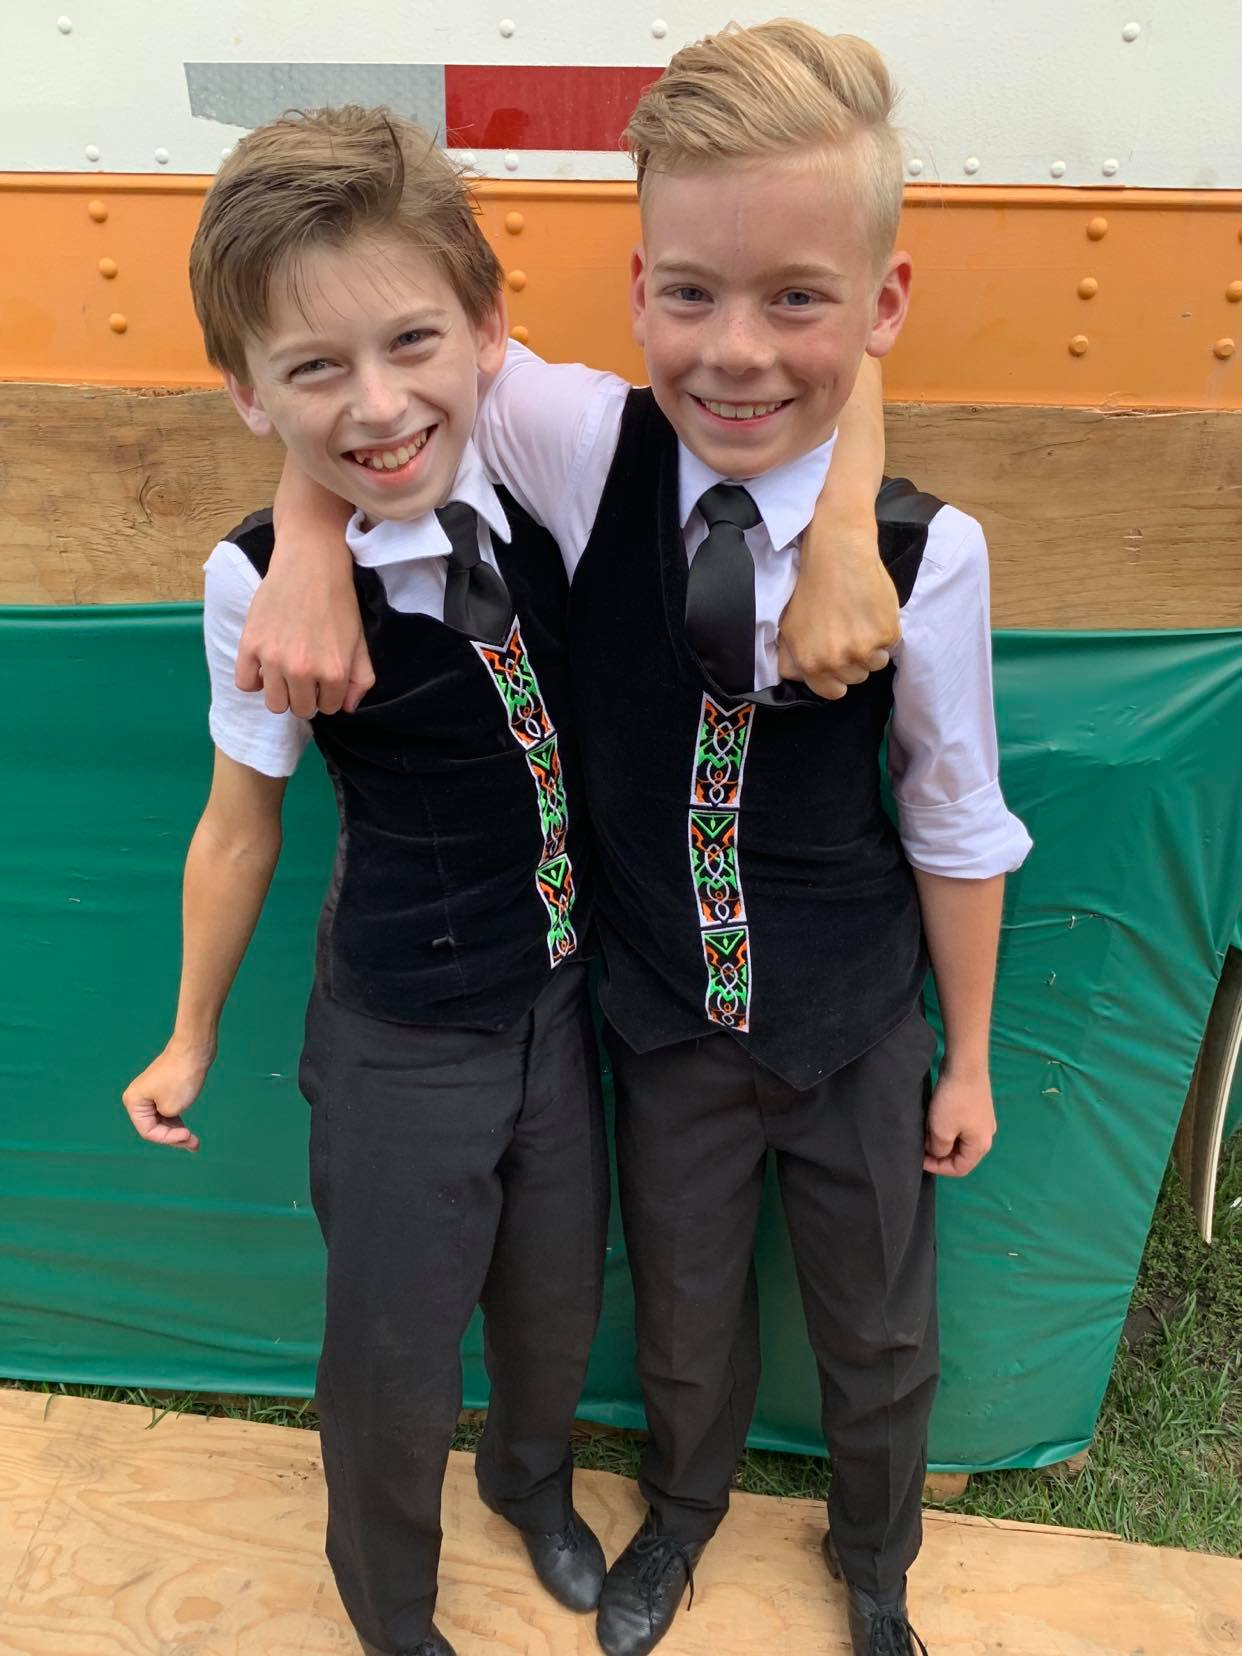 Two boys who dance at Mattierin smiling side stage at the Servus Heritage Days Festival in Edmonton, AB